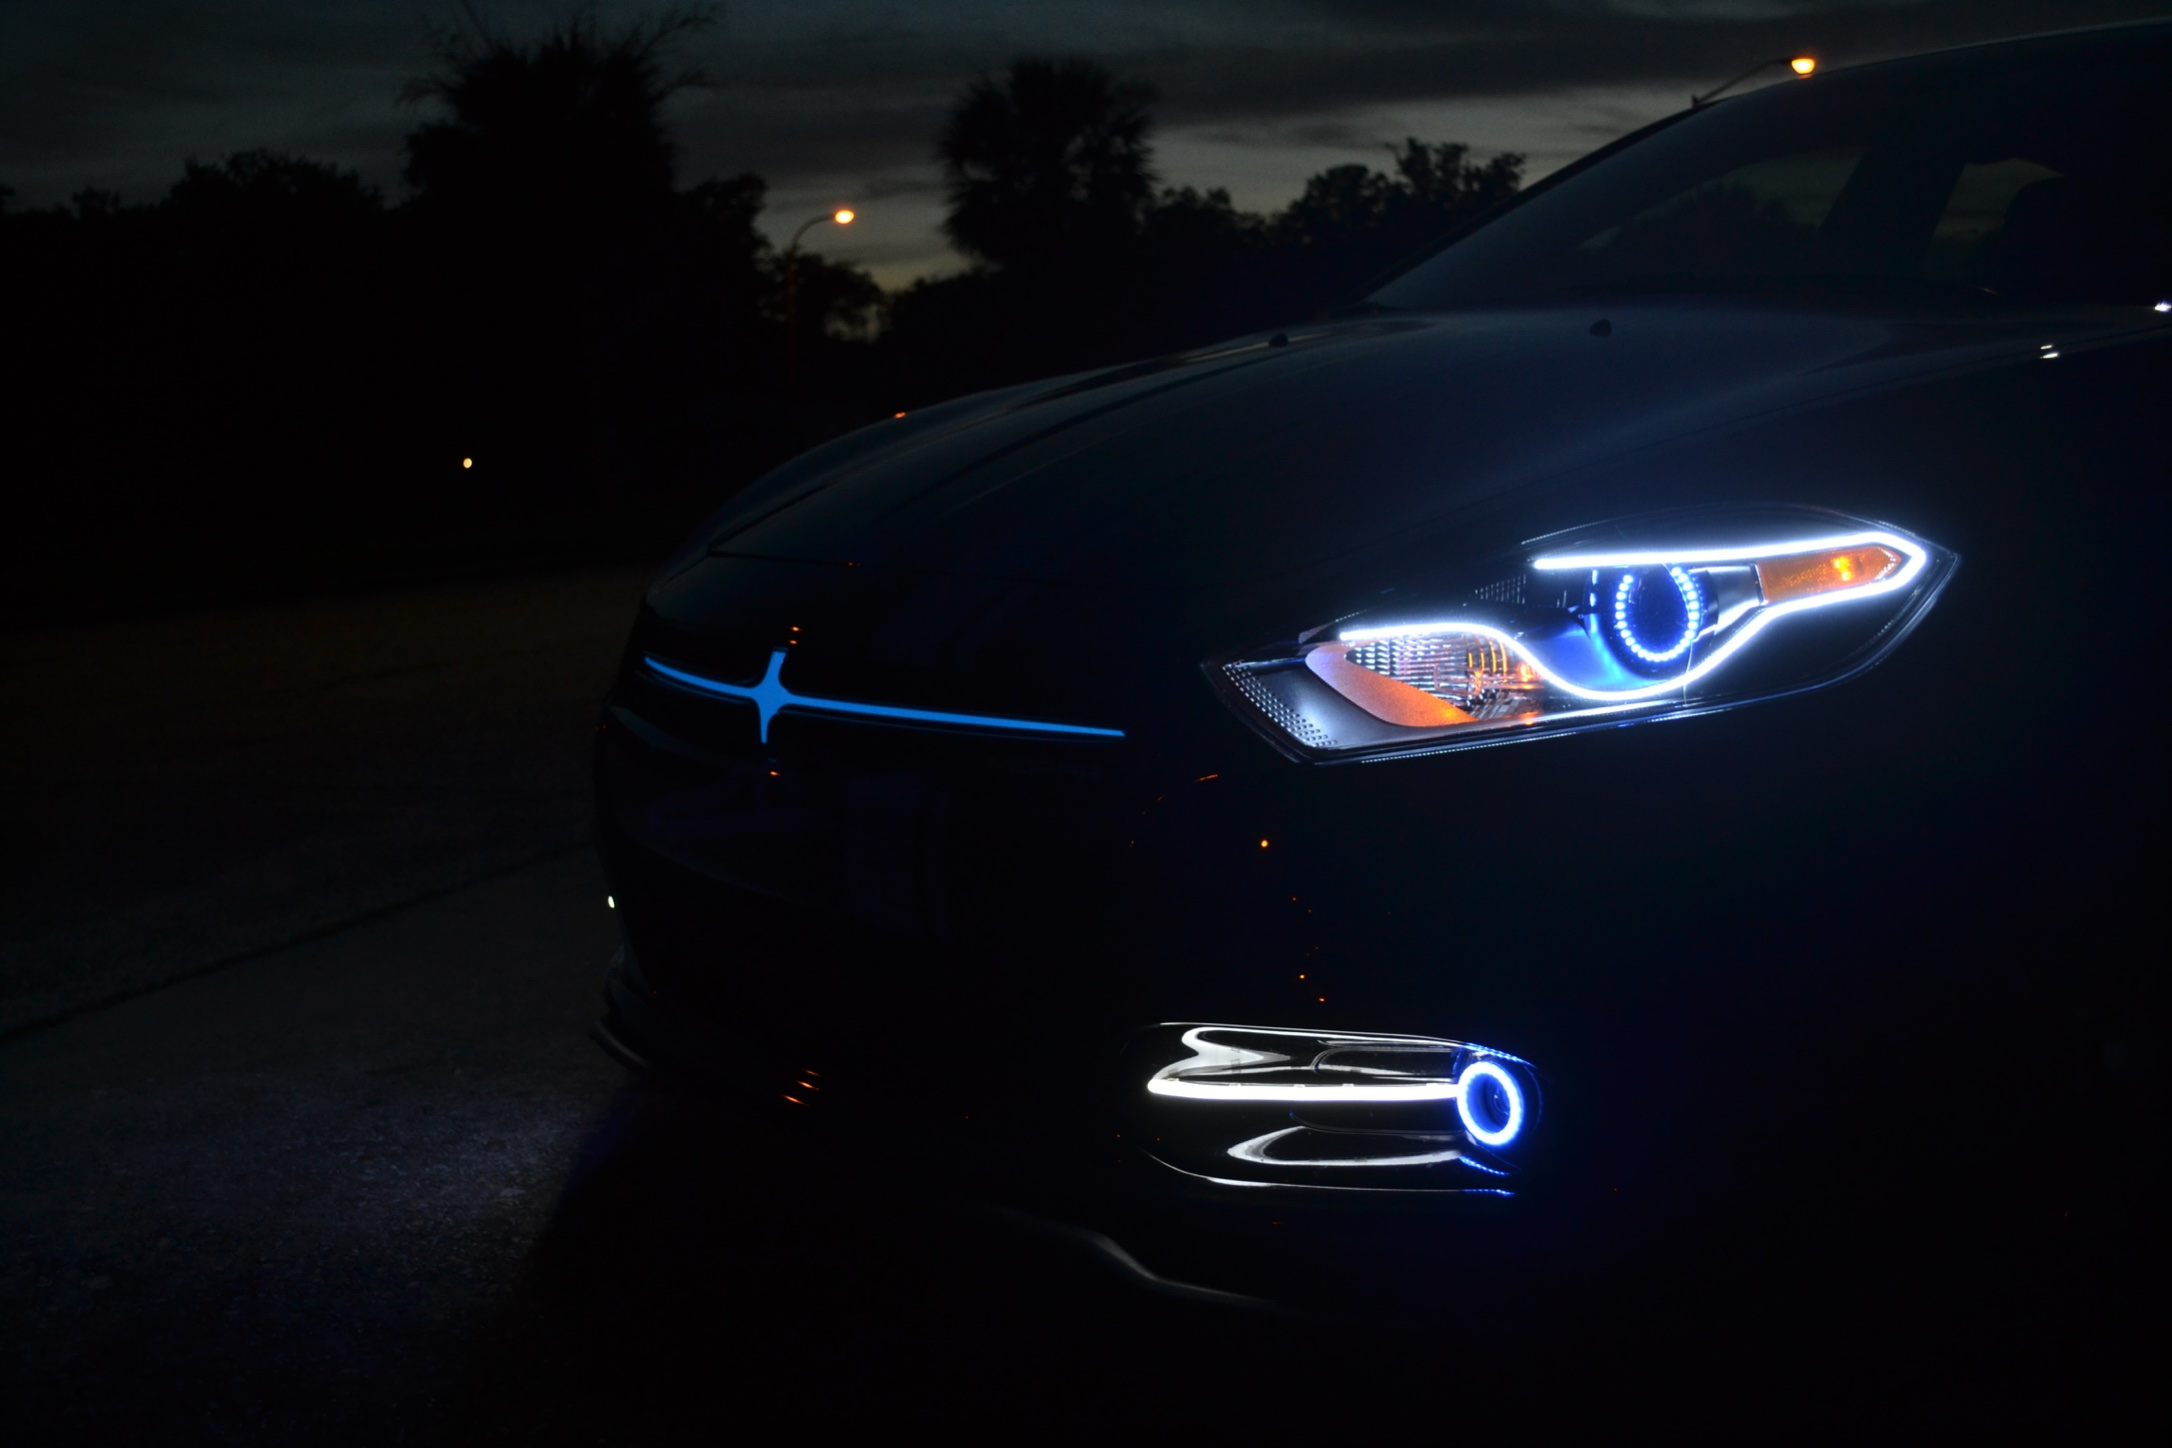 Anyone Do The New Charger Led Headlight Style Mod